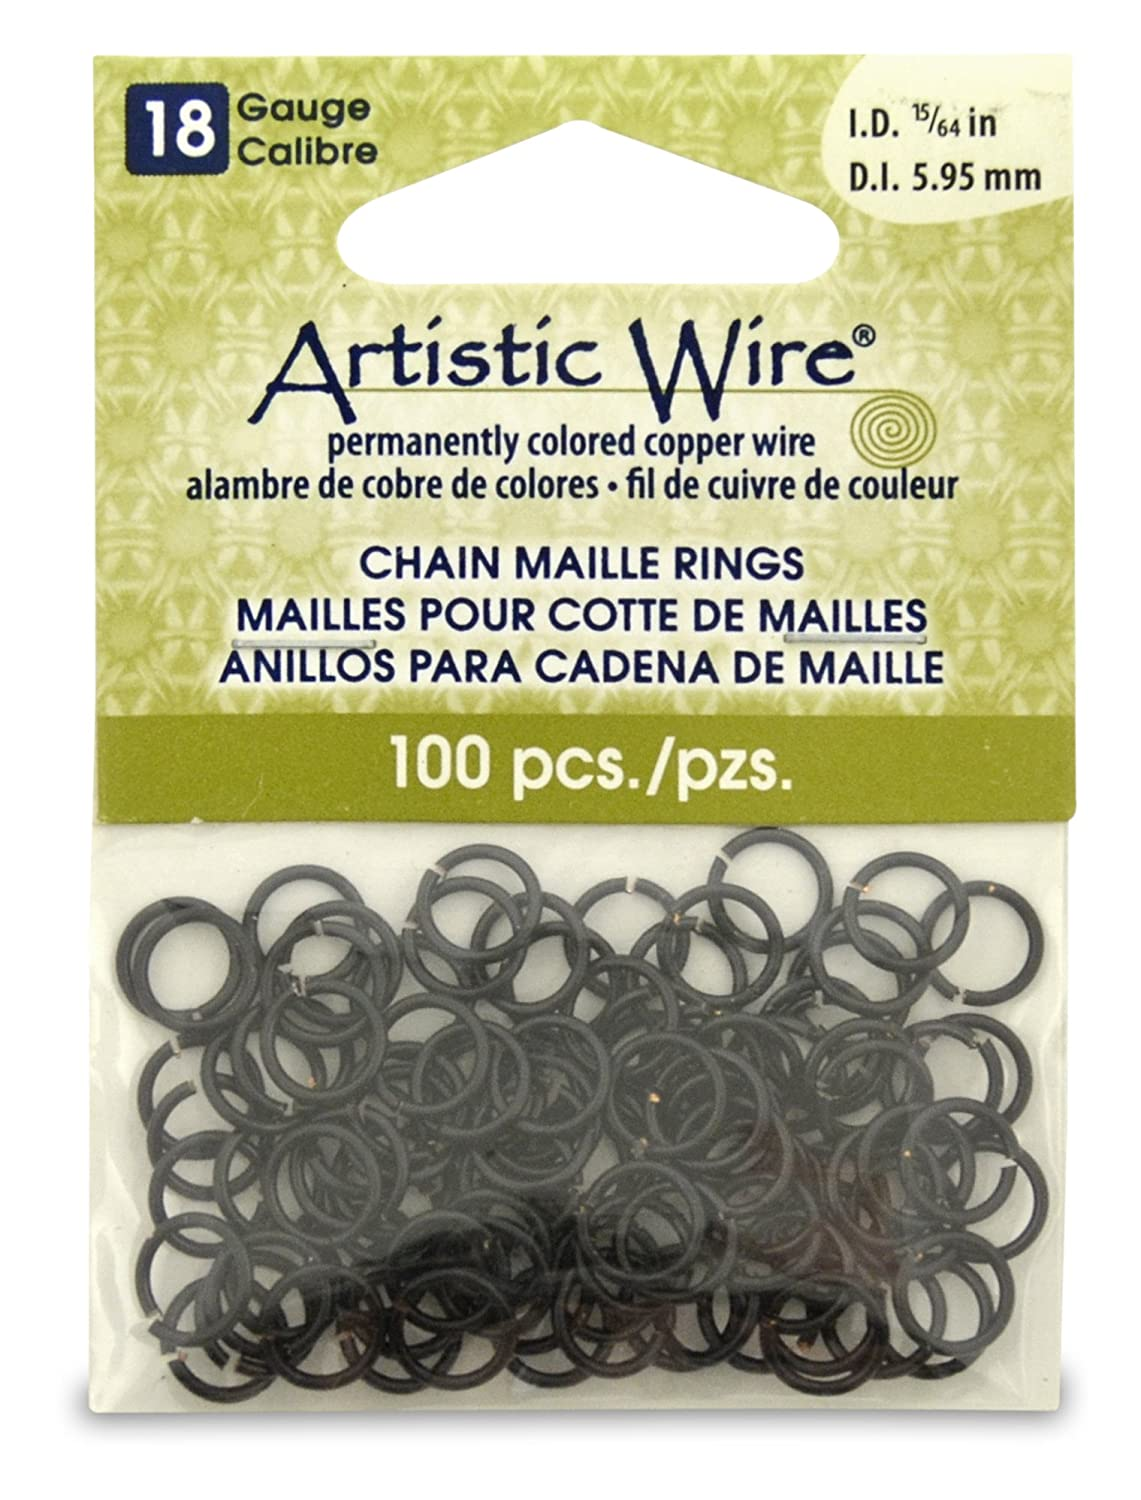 Artistic Wire Beadalon 15/64-inch 100 Piece 18-Gauge Chain Maille Rings, Black A314-18-02-10